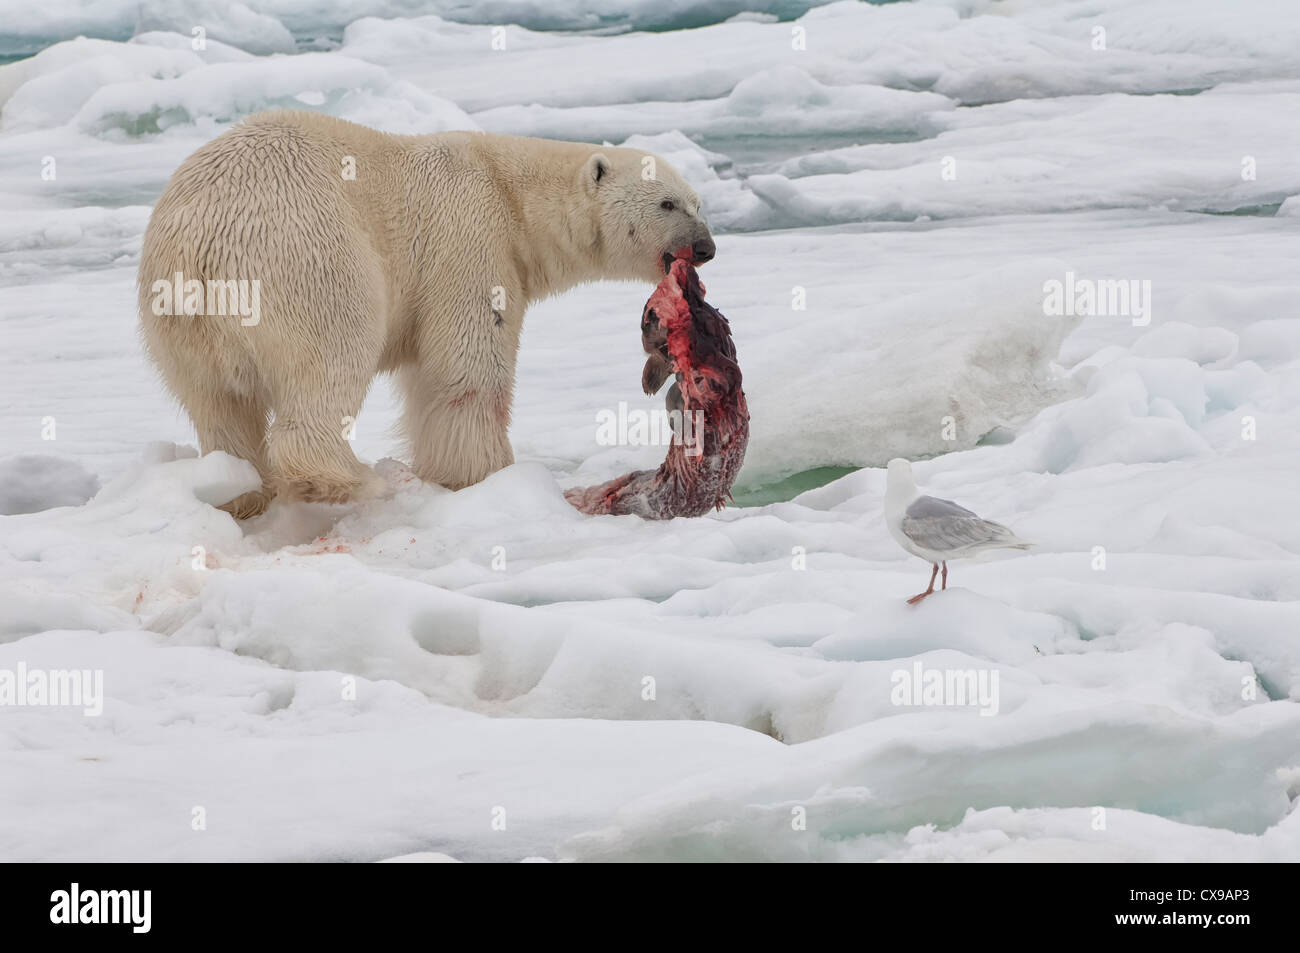 Male polar bear (Ursus maritimus) with a seal prey, Svalbard Archipelago, Barents Sea, Norway - Stock Image